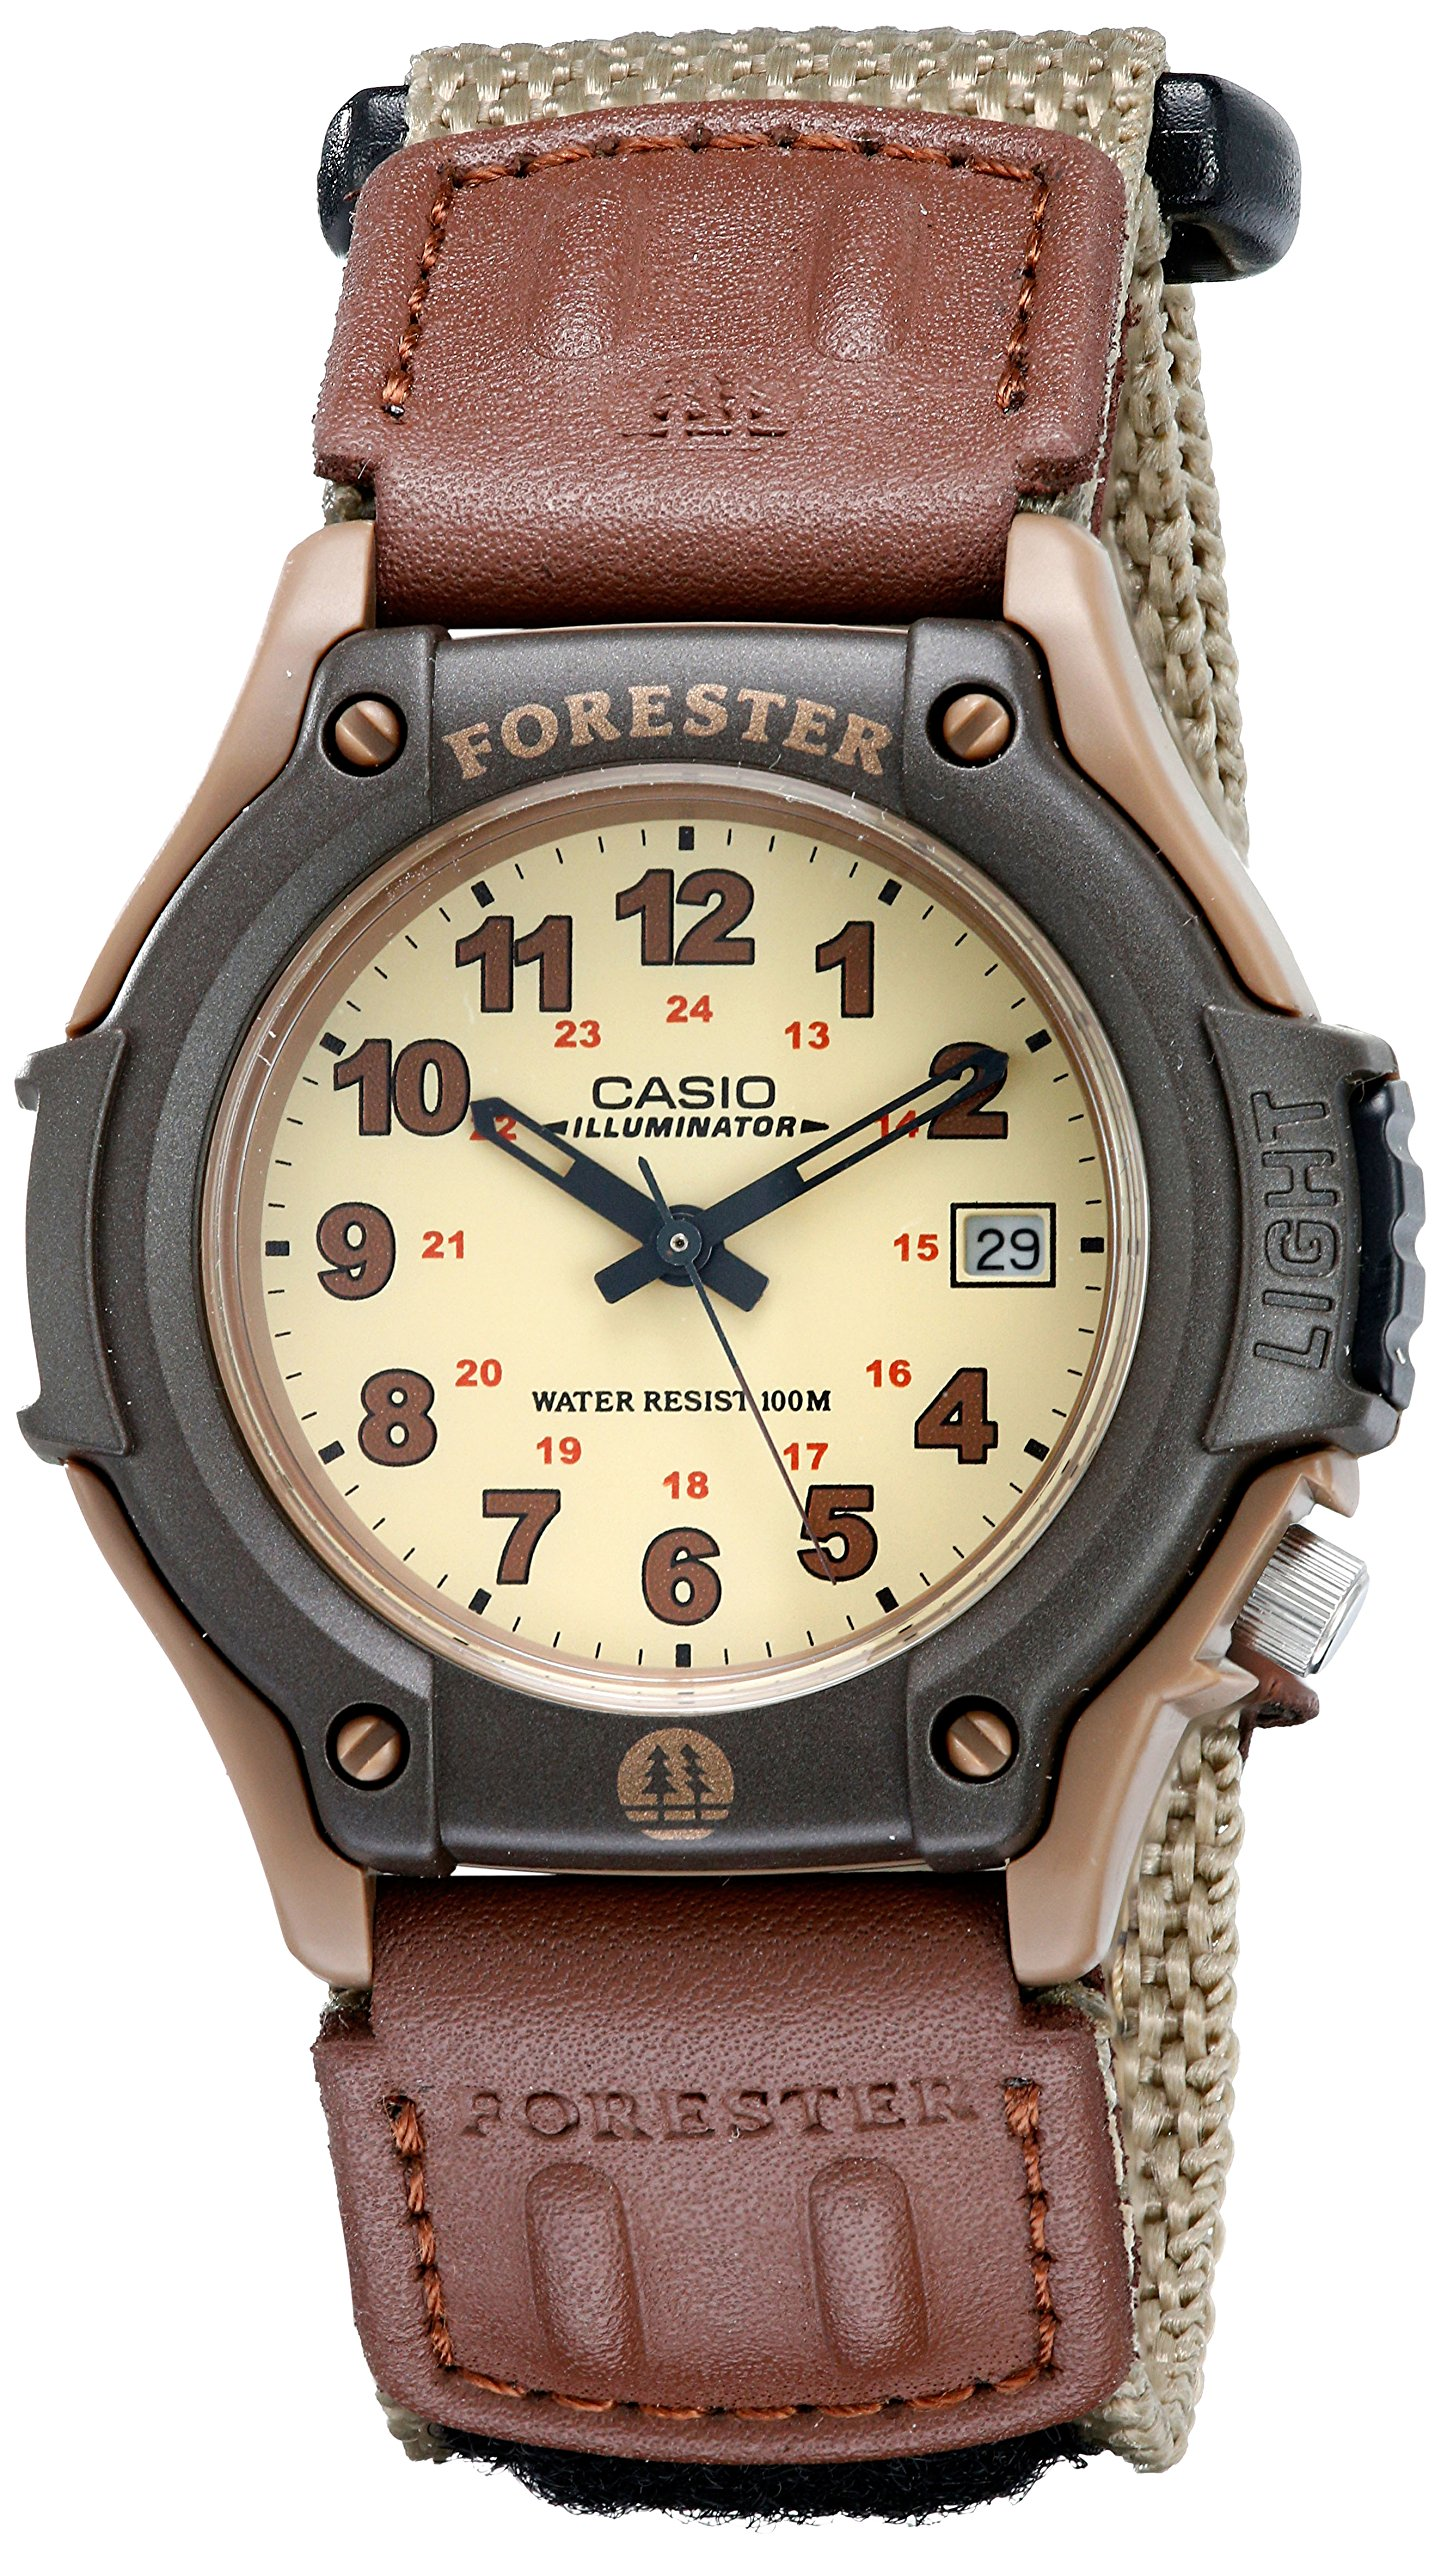 CASIO FT 500WC 5BVCF Forester Sport Watch